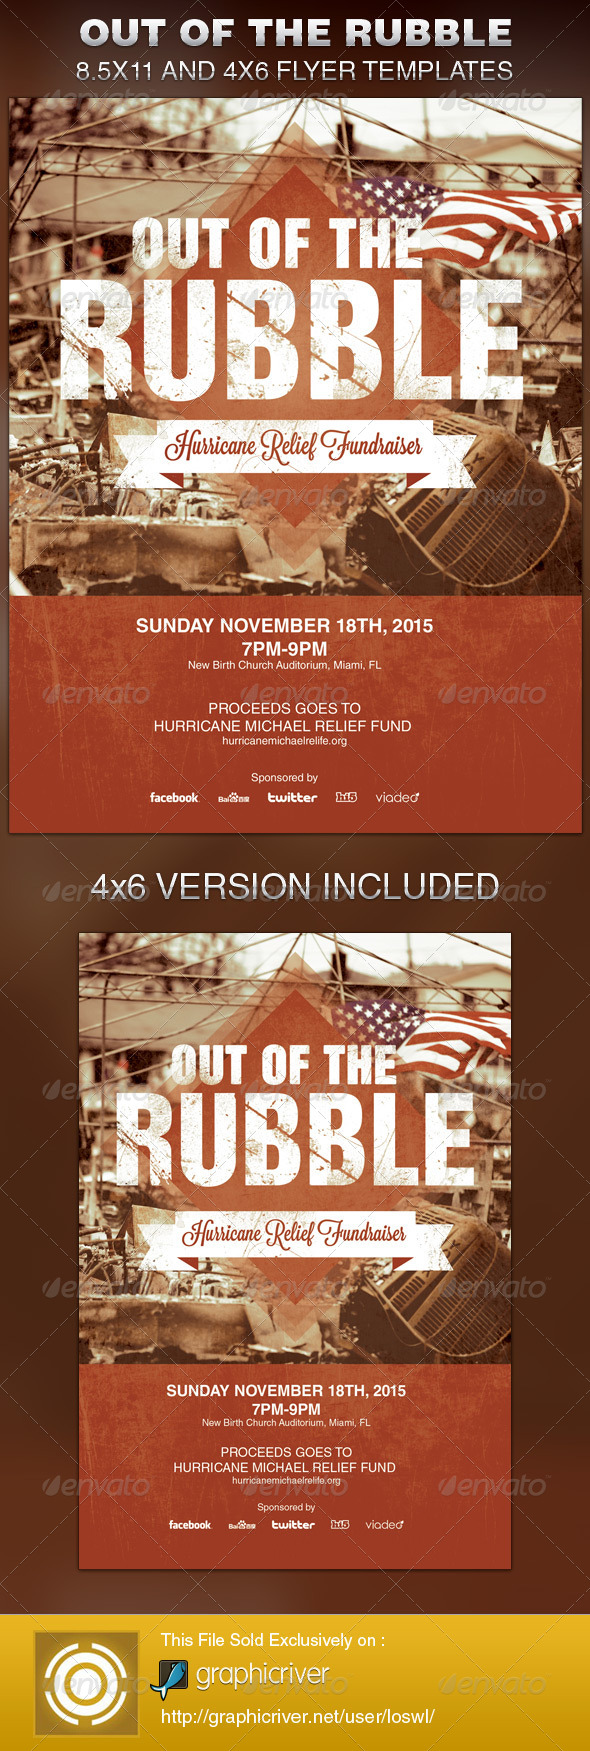 Out of the Rubble Church Flyer Template - Church Flyers